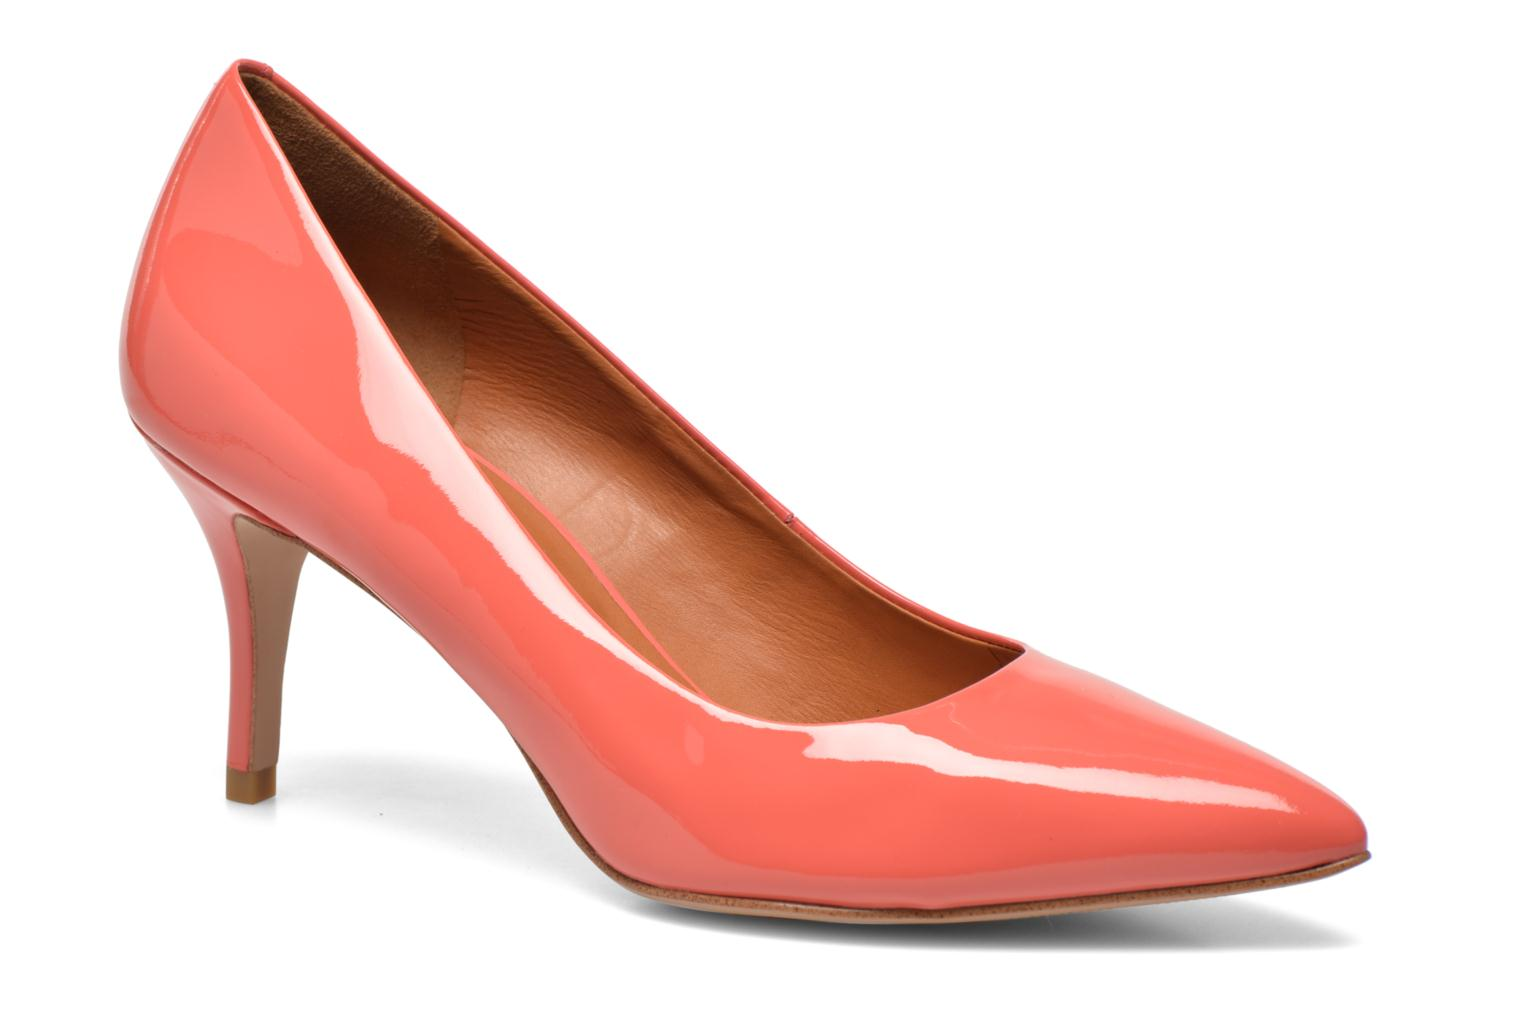 Pumps Kate by What For